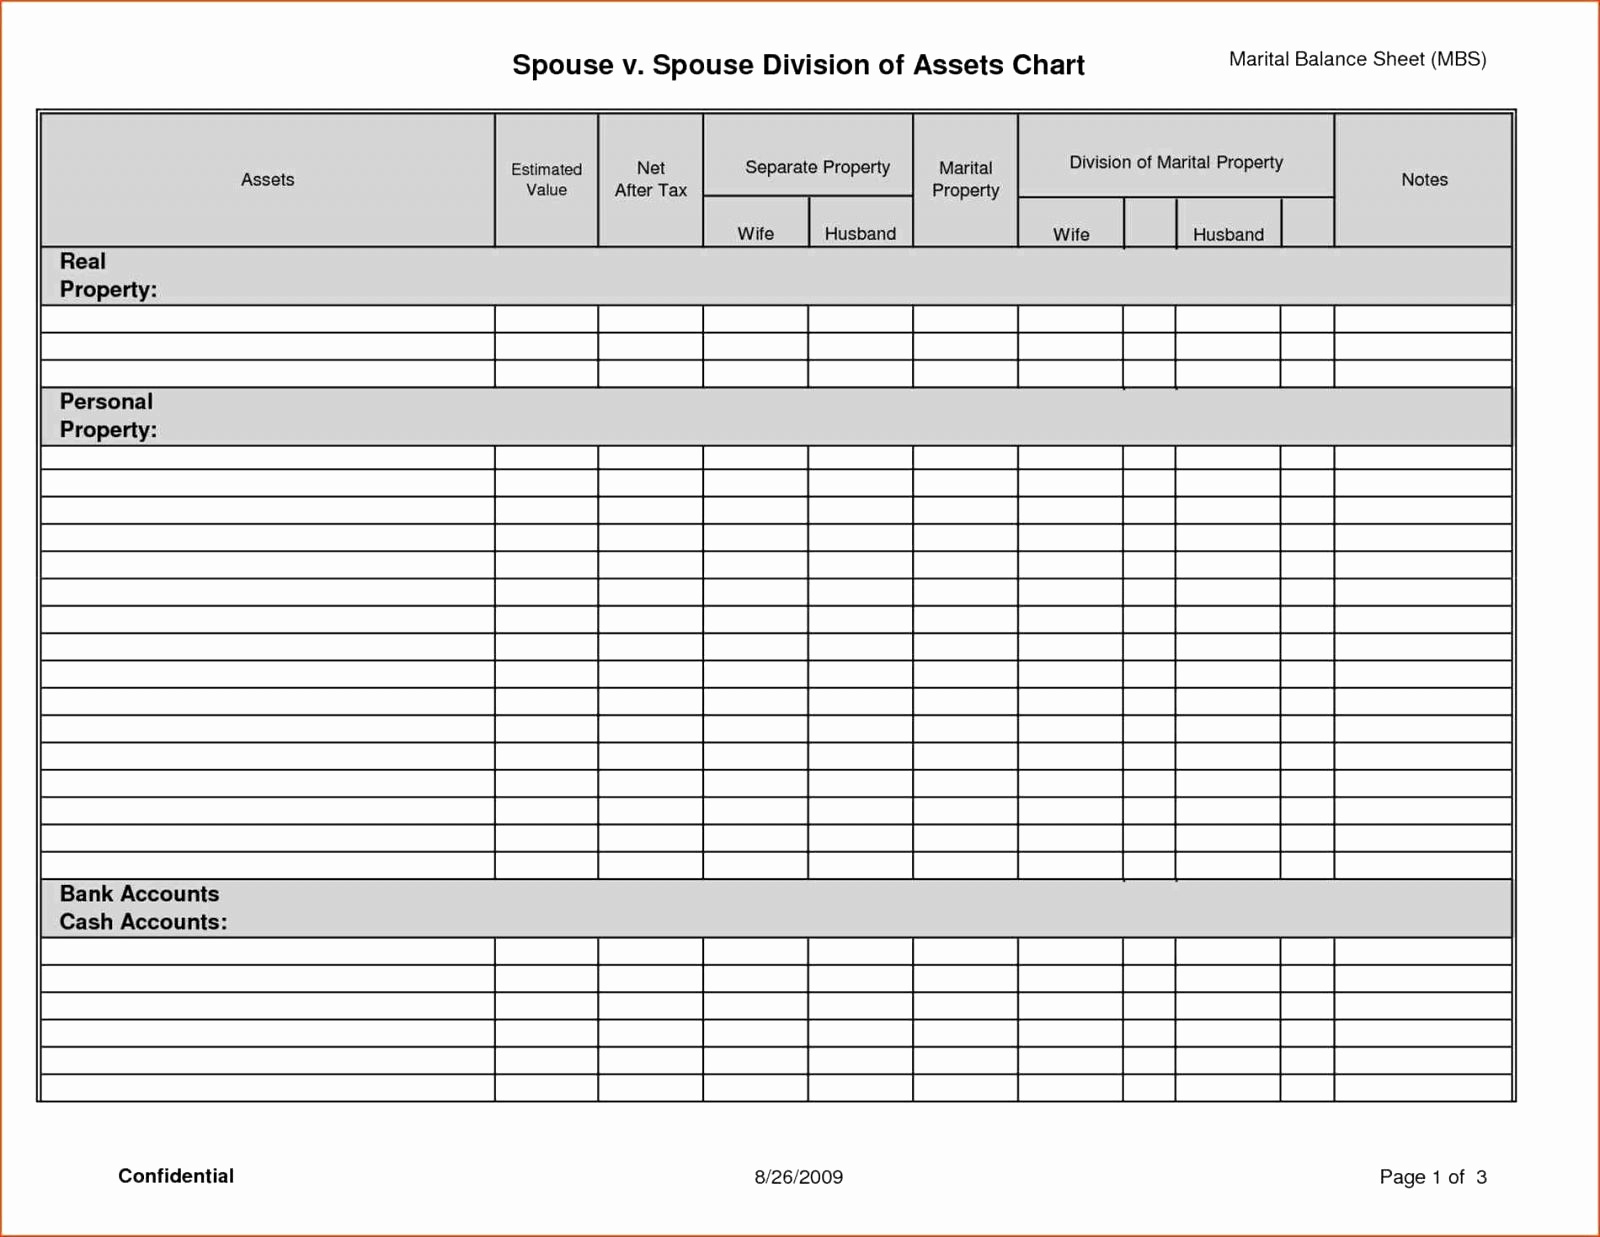 Nist 800 53A Rev 4 Spreadsheet Pertaining To Nist 800 53A Rev 4 Spreadsheet  Spreadsheet Collections